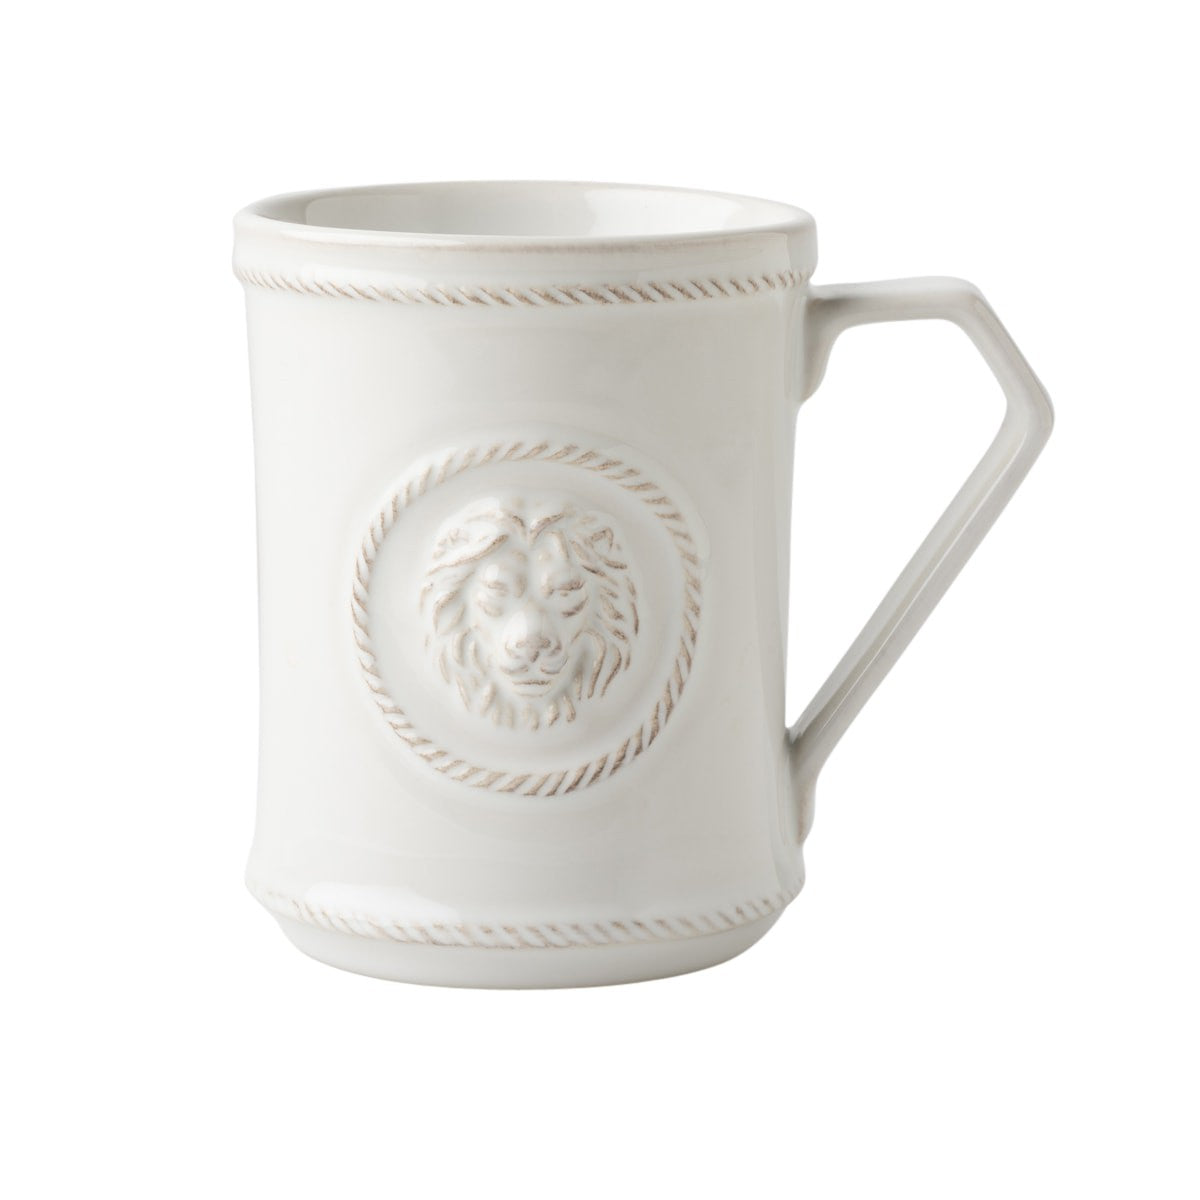 Berry & Thread Whitewash Cupfull of Courage Mug